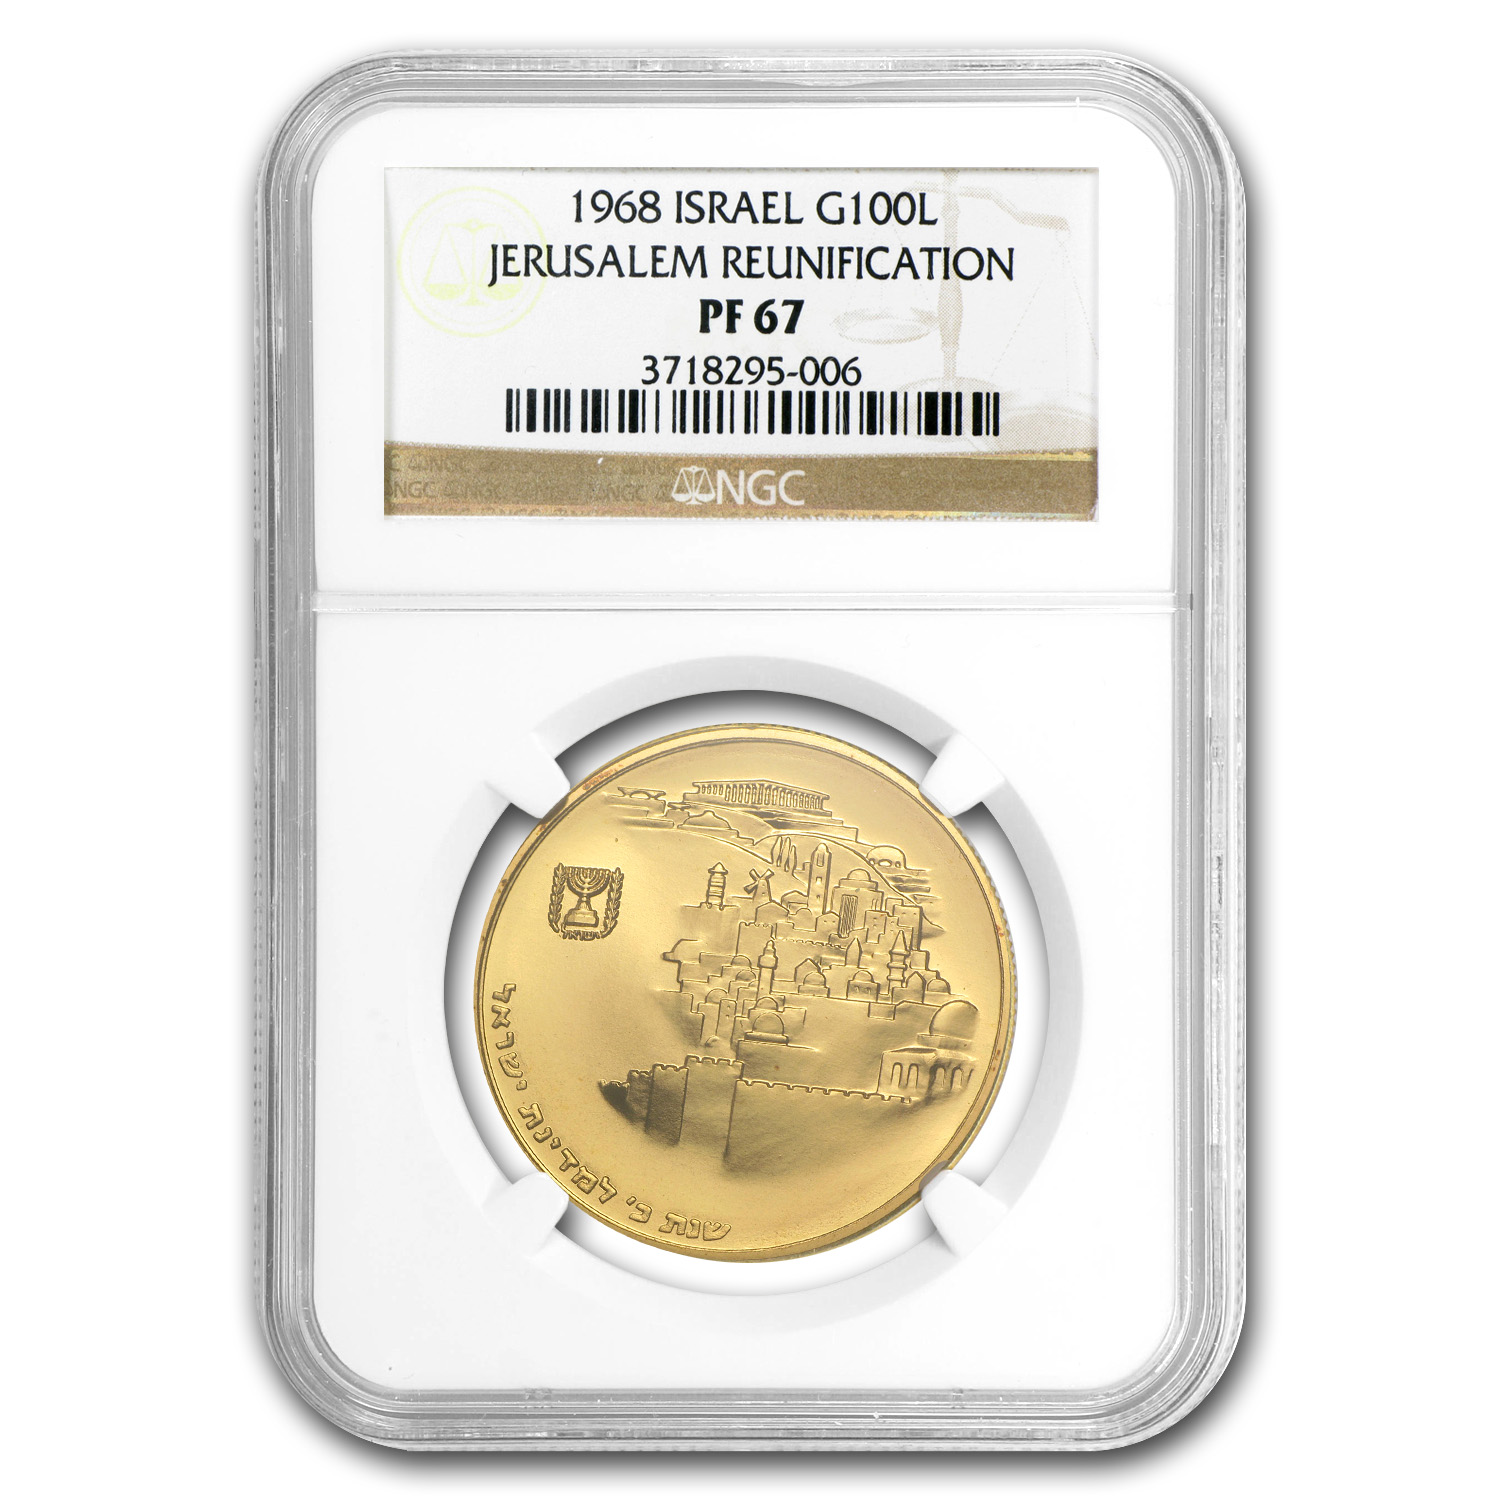 1968 Israel Jerusalem Reunification Gold 100 Lirot Coin PF-67 NGC